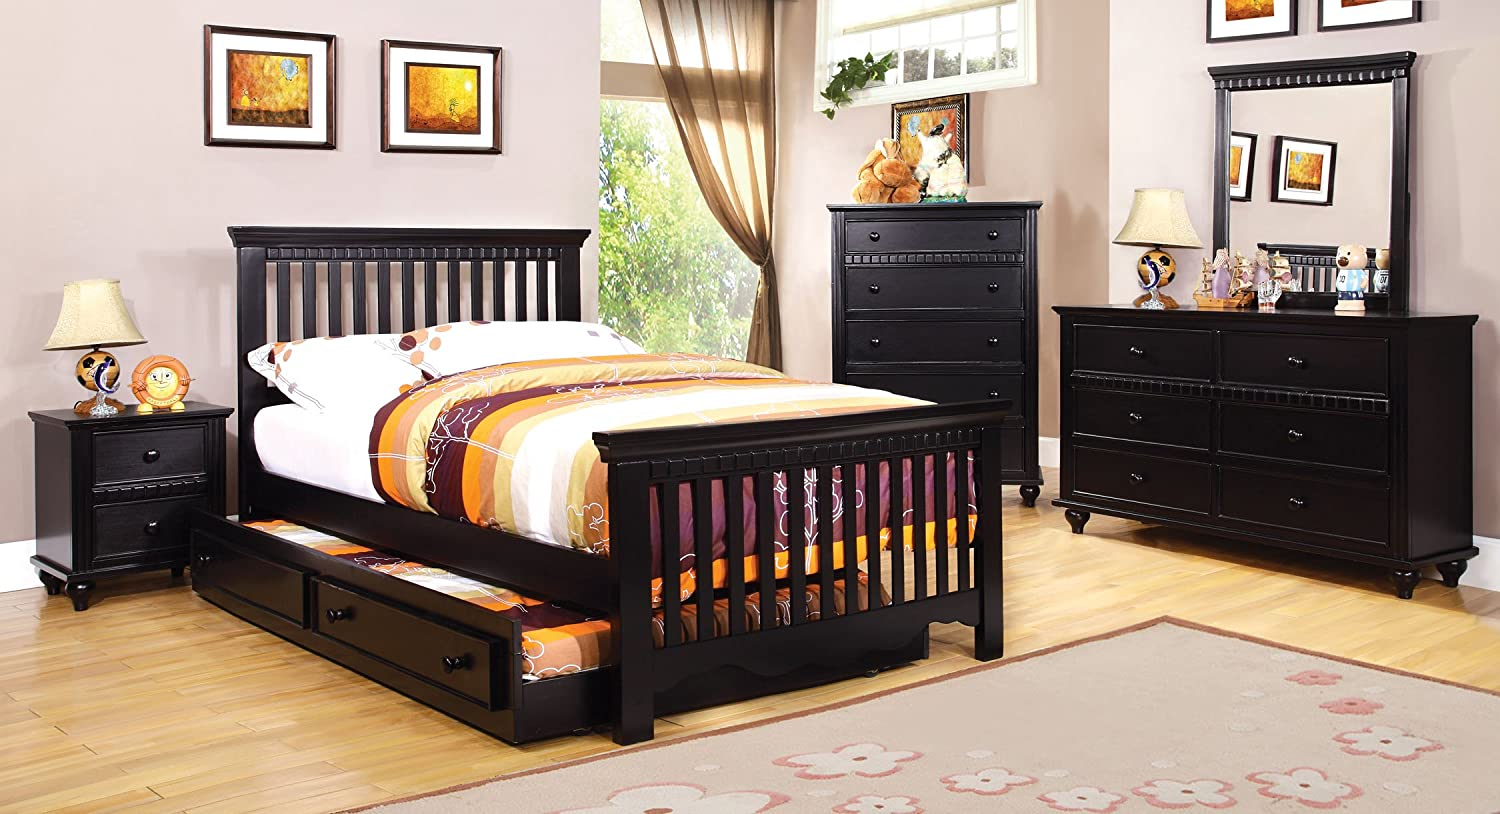 amazoncom furniture of america elliot 2piece cottage style twin size bed frame with trundle black kitchen u0026 dining